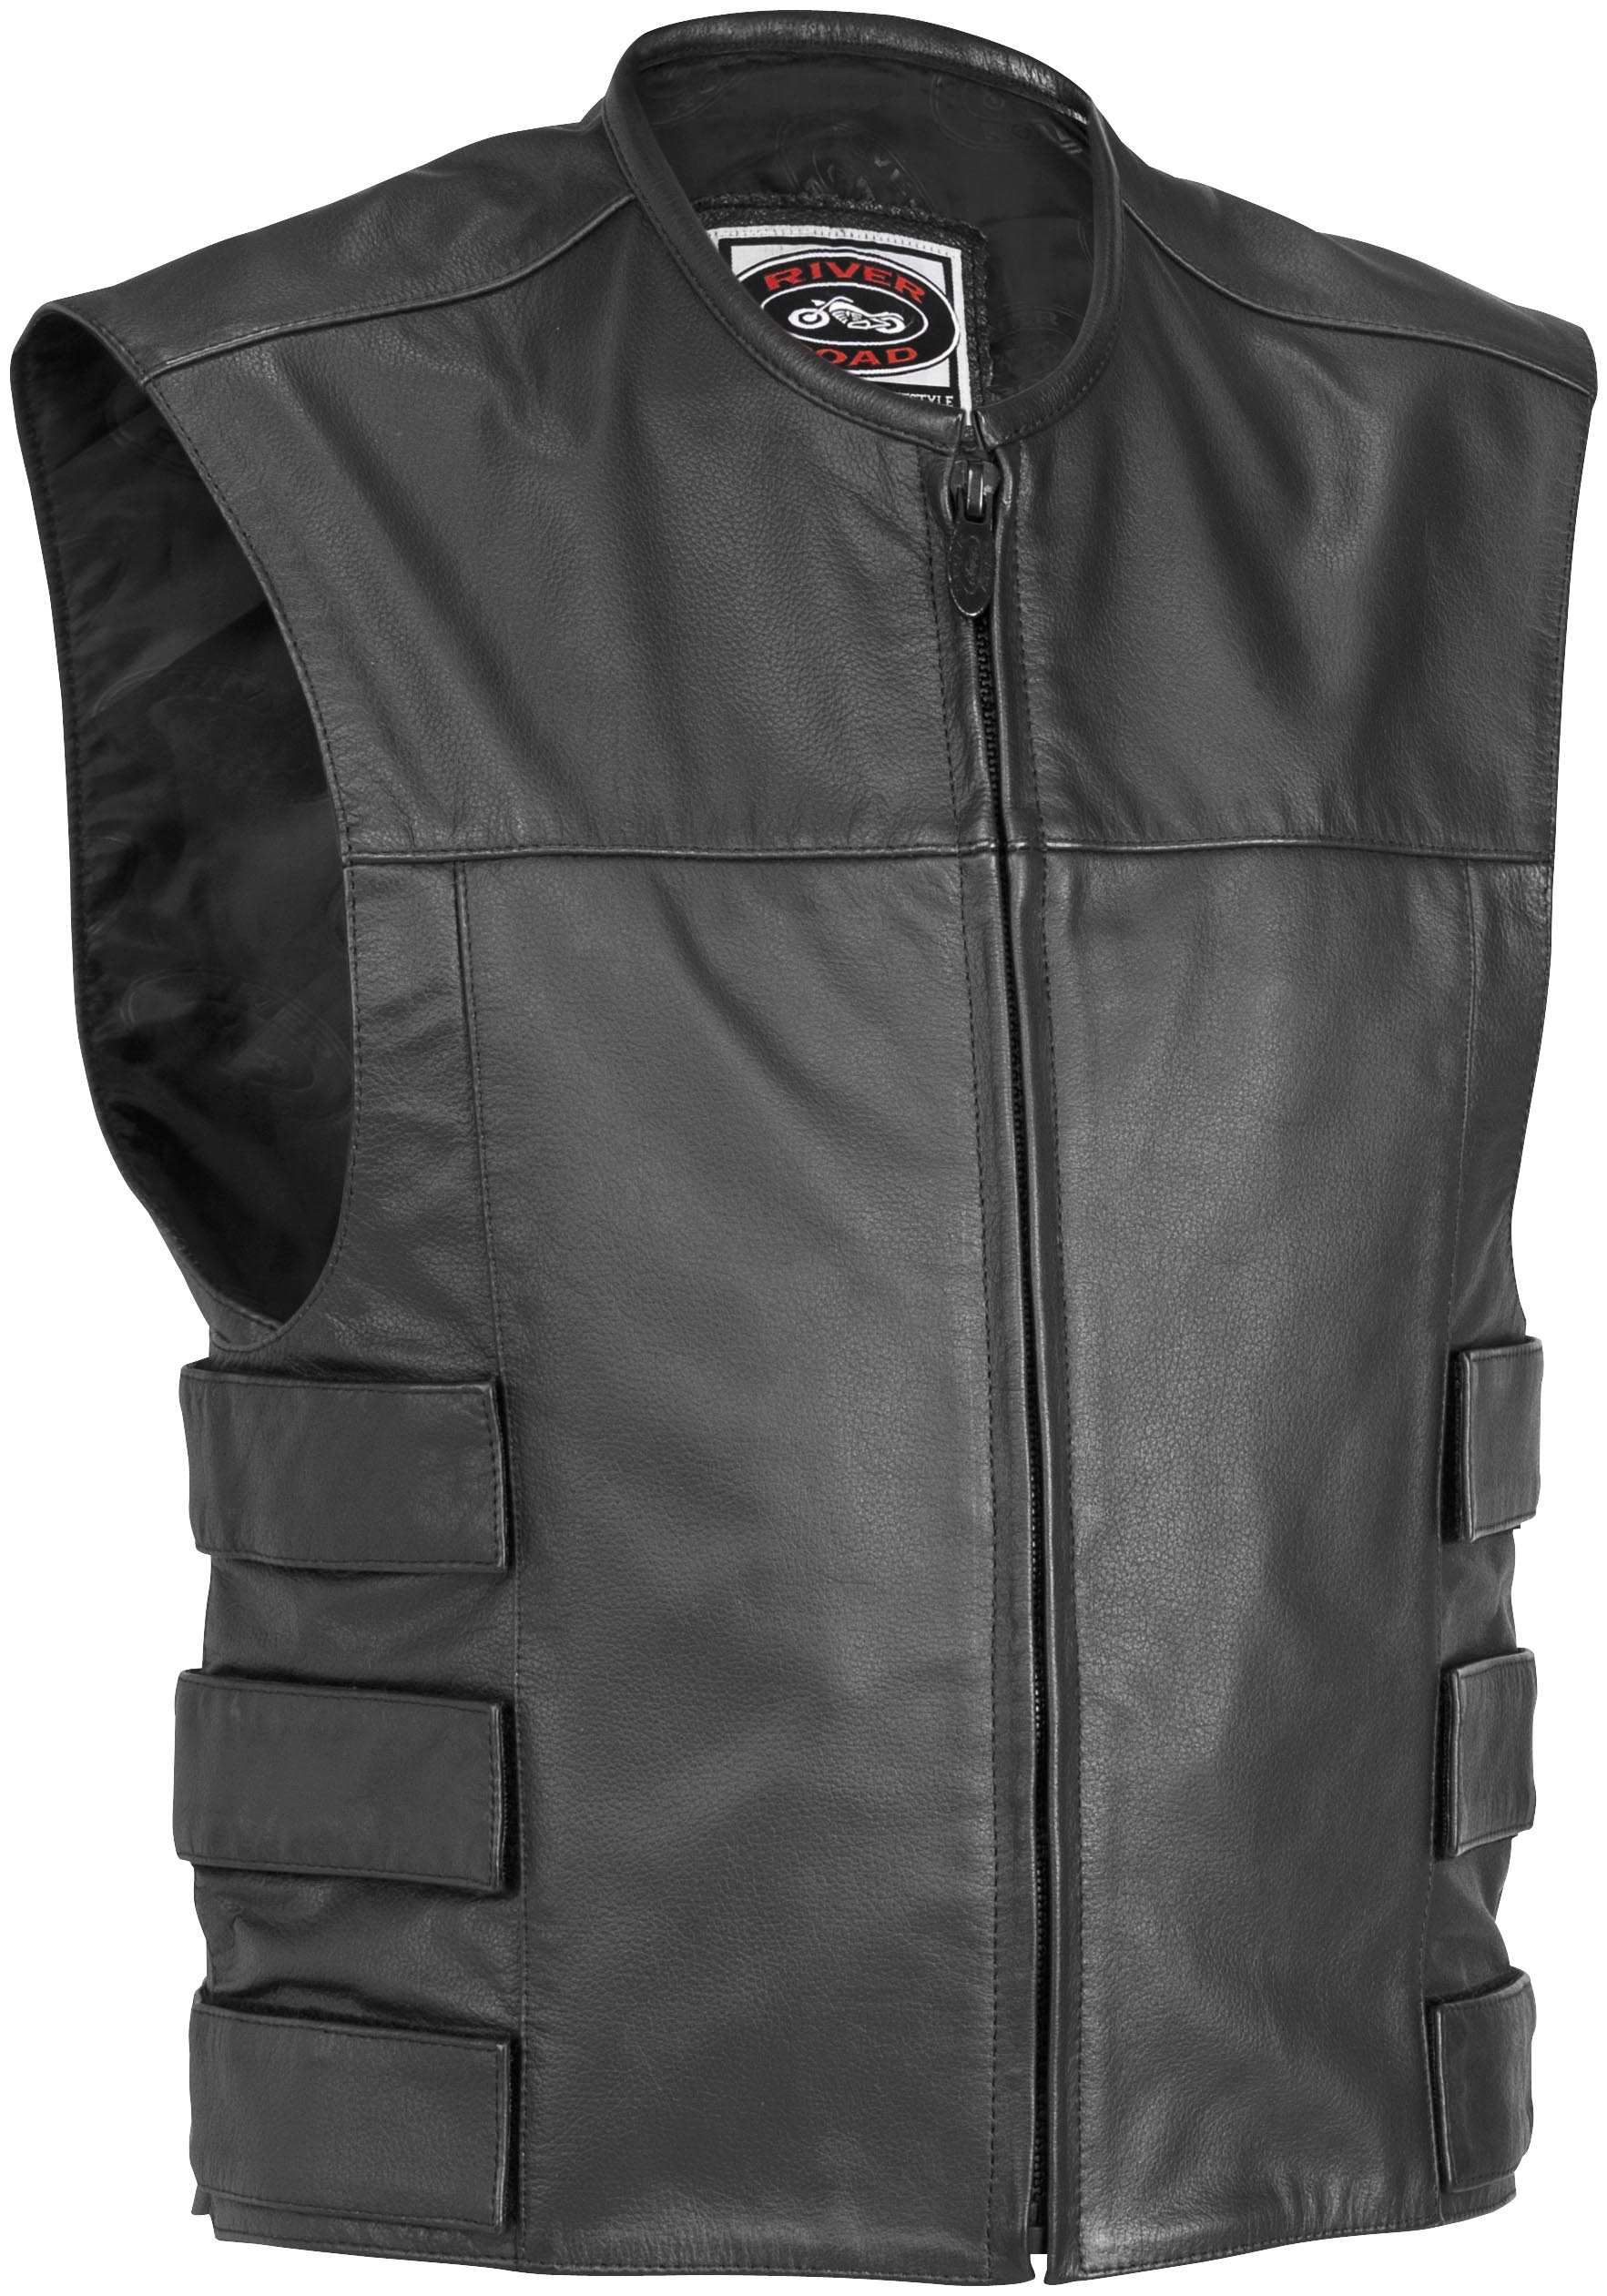 Harrier Tac Leather Vest